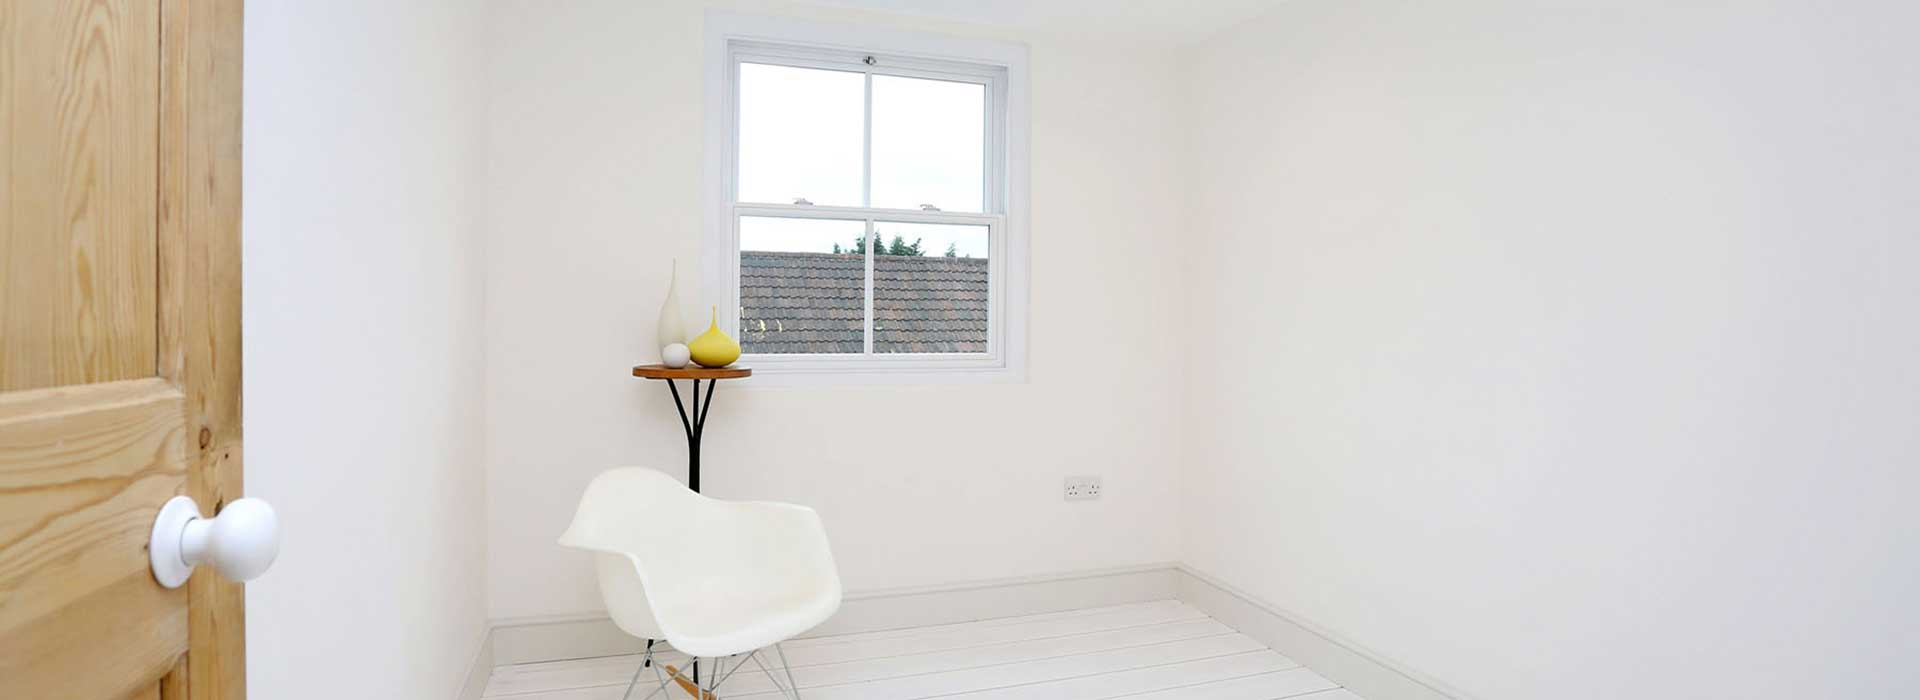 Painting Services in Ealing London - Creative Living Decor